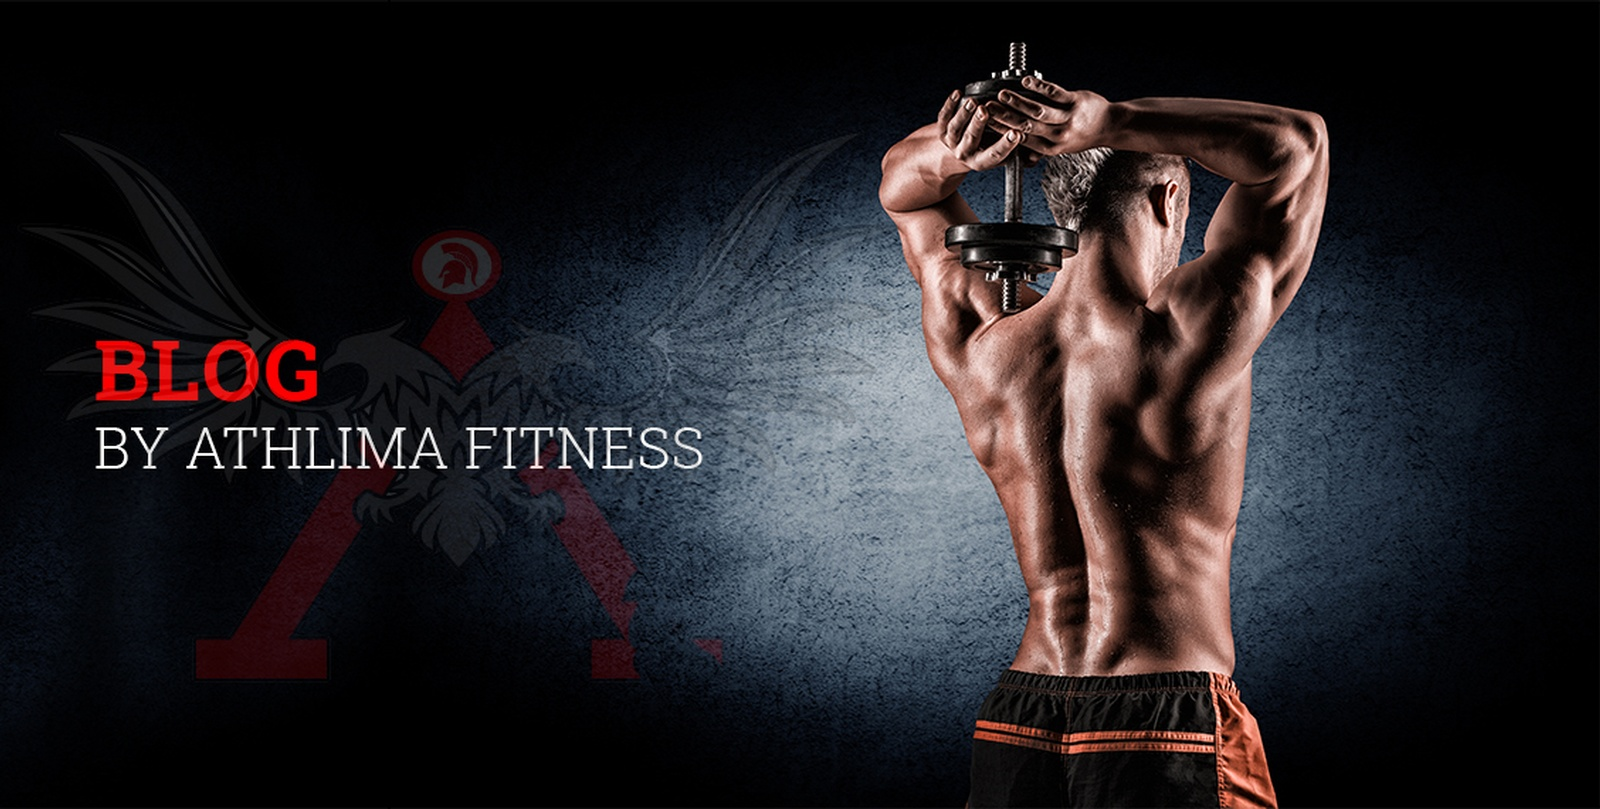 Blog by Athlima Fitness